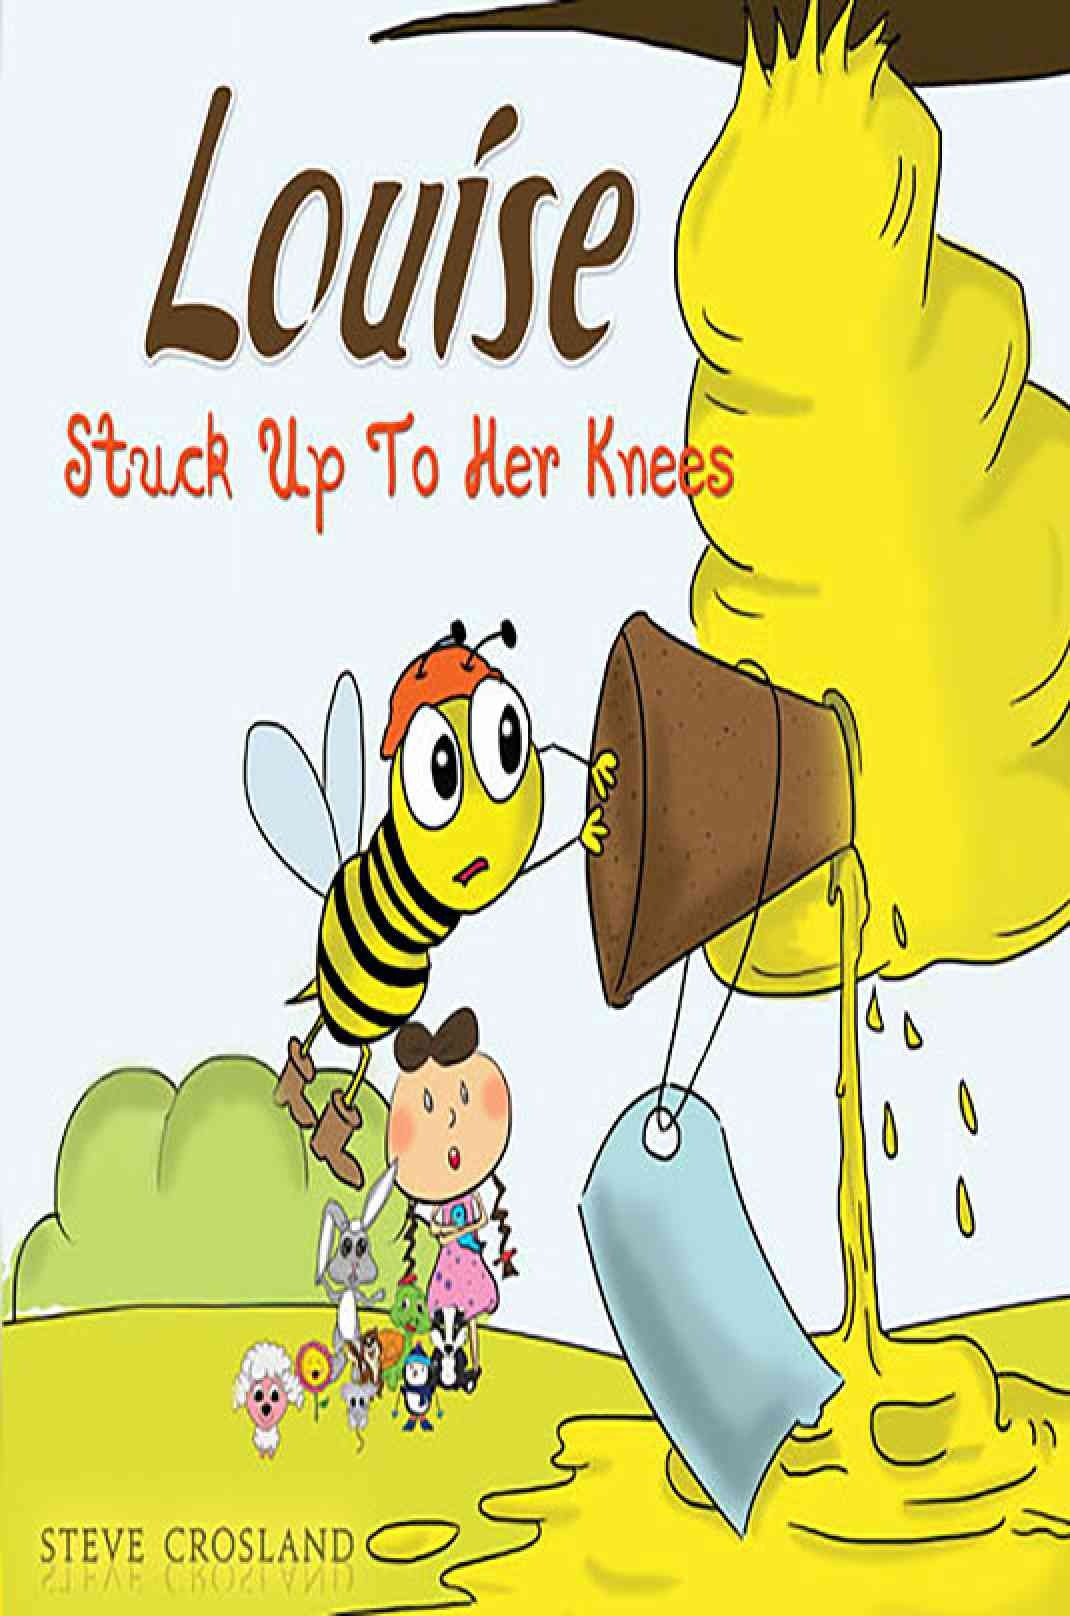 Louise Stuck Up To Her Knees